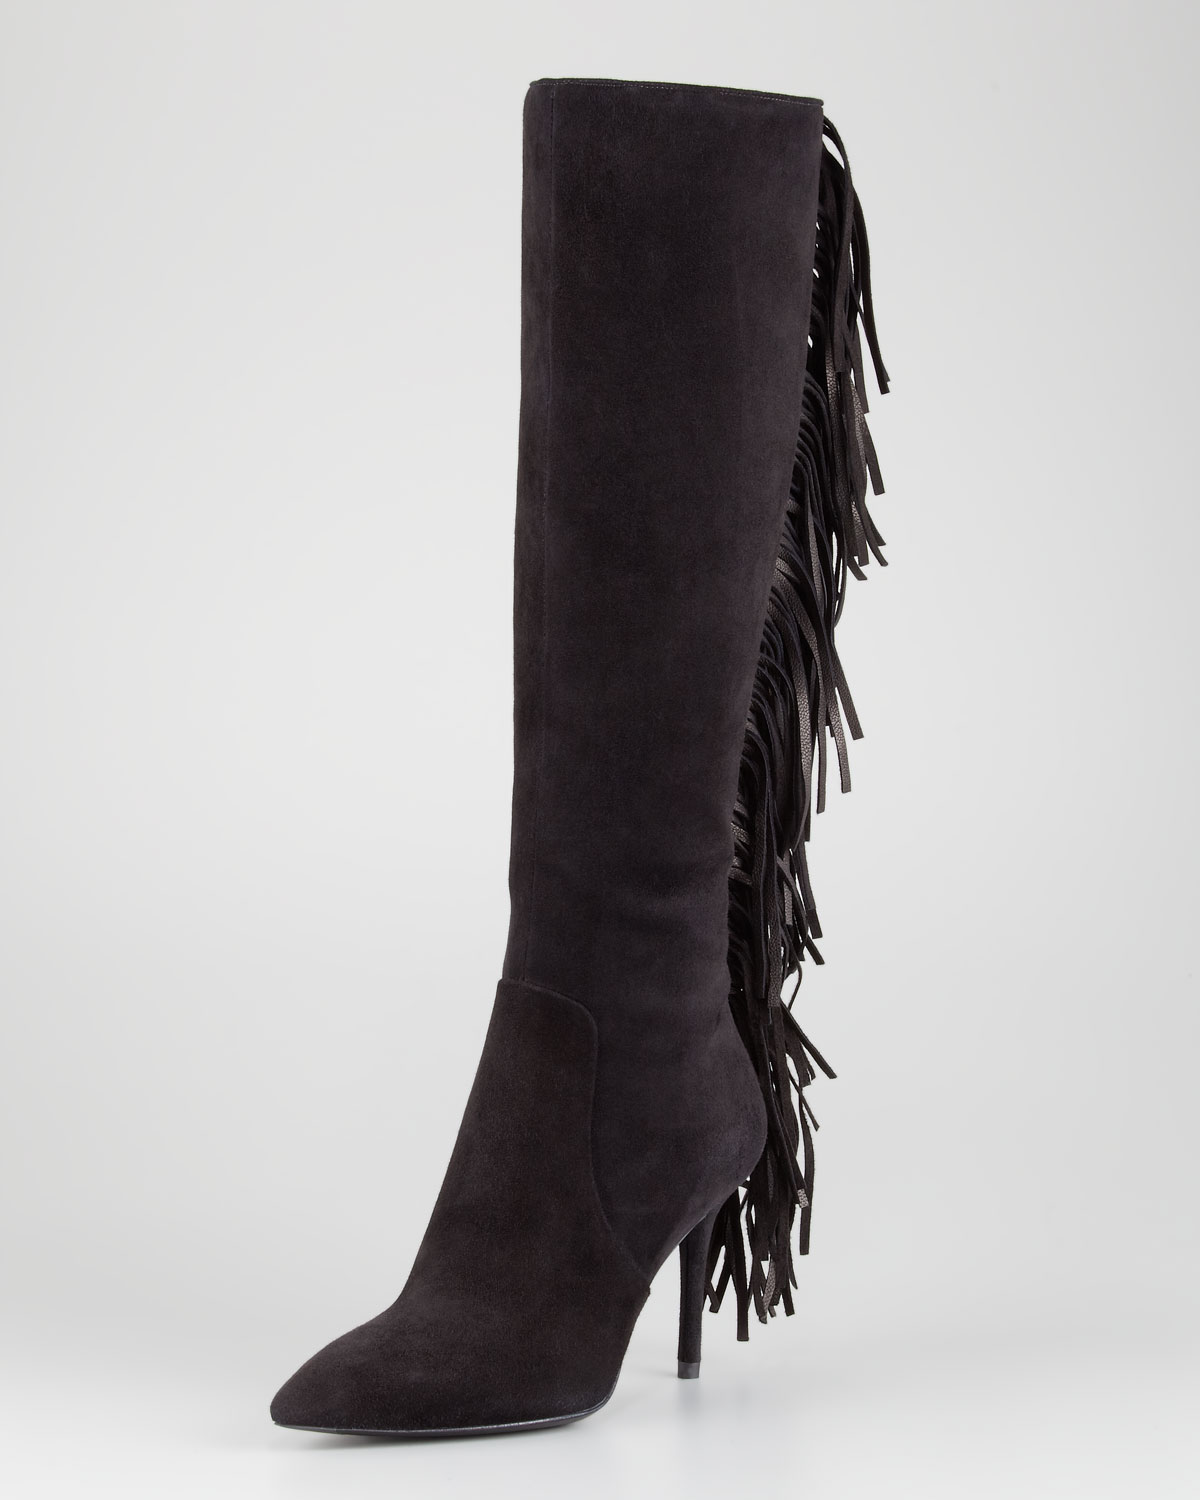 b brian atwood mella backfringe suede boot in black lyst